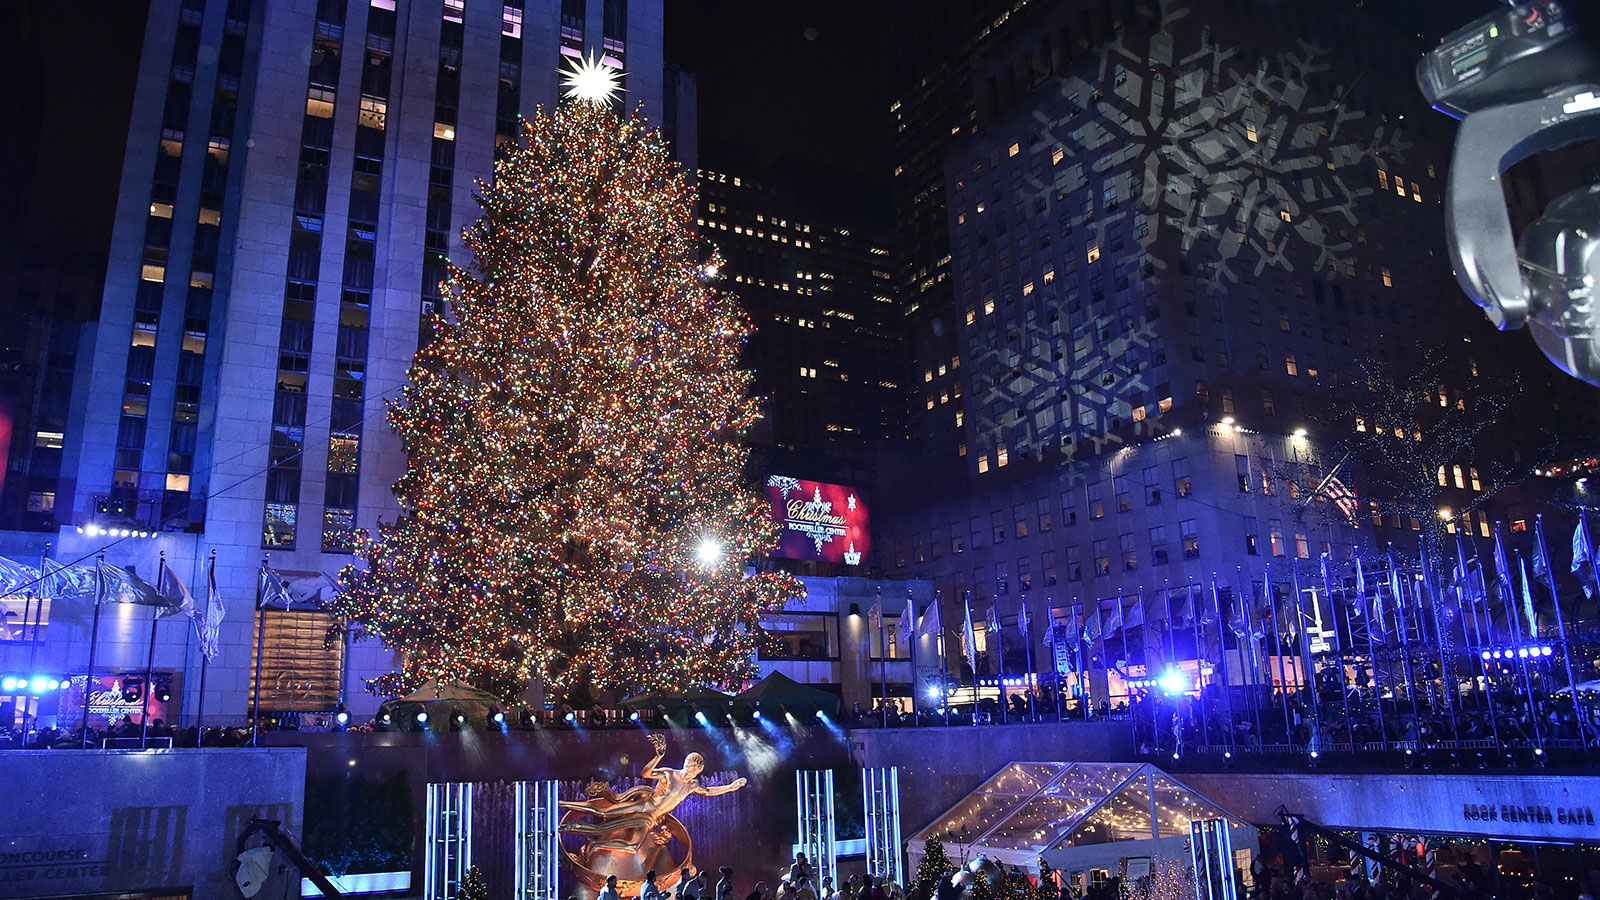 5 fun facts about the rockefeller center christmas tree howstuffworks 5 fun facts about the rockefeller center christmas tree howstuffworks